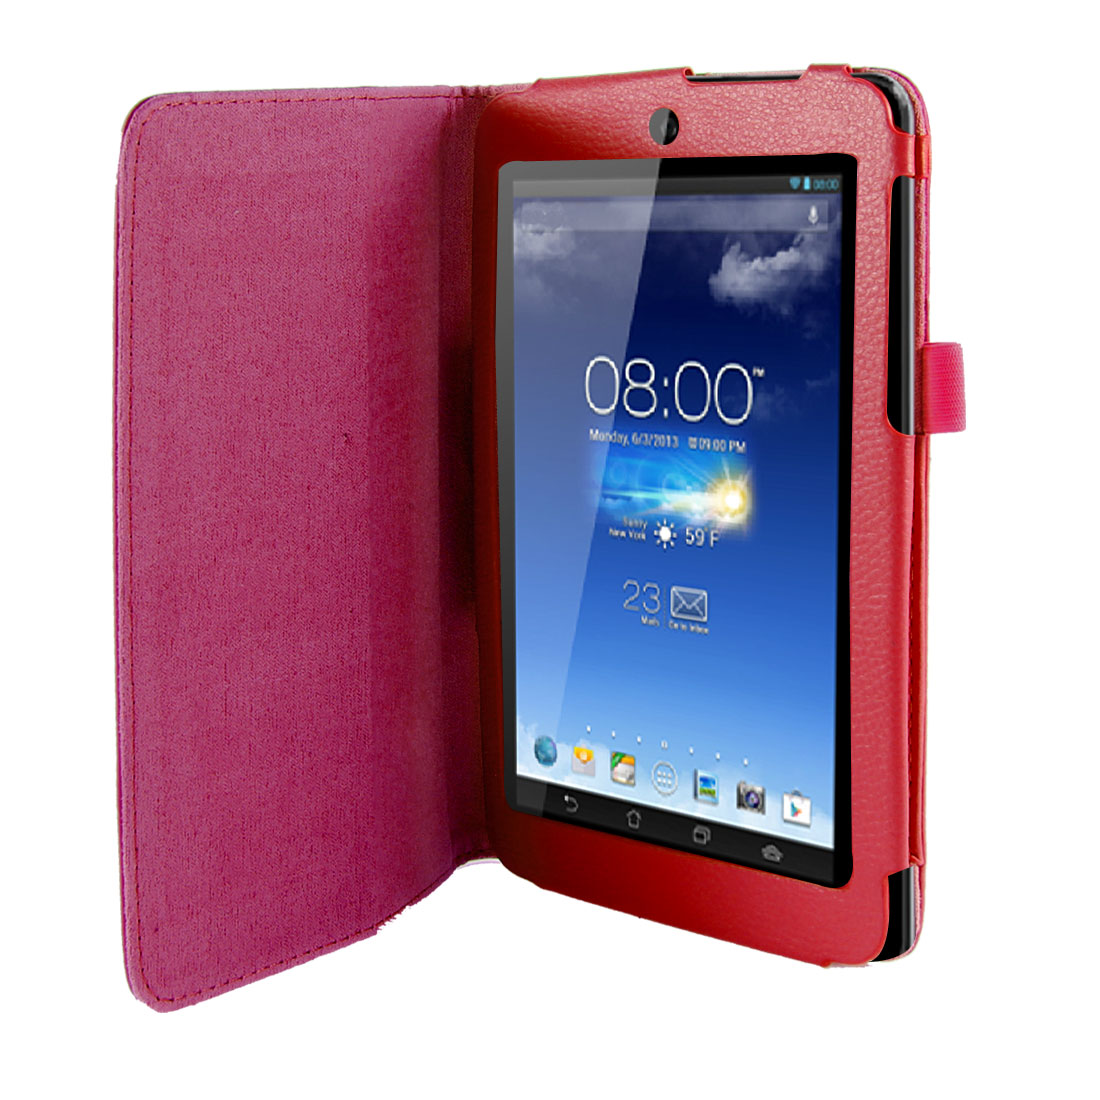 Stand Magnetic Flip Protective Case Cover Red for ASUS MeMO Pad HD 7 ME173X